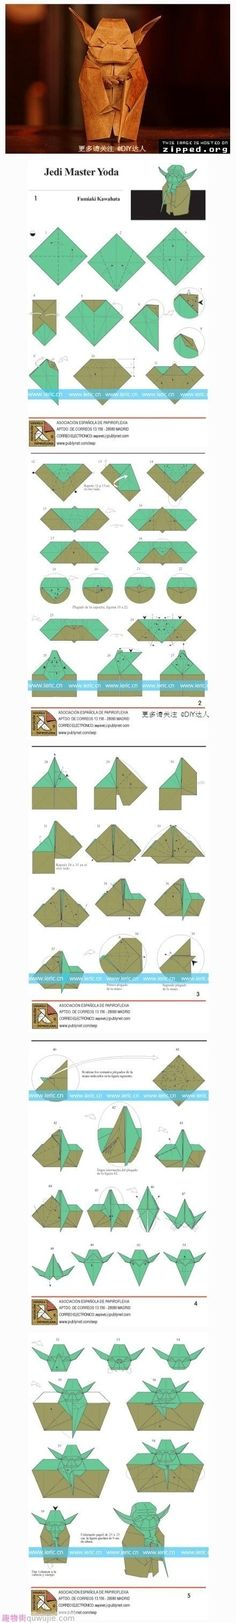 Origami Jedi Master Yoda. I am totally going to make this!!!